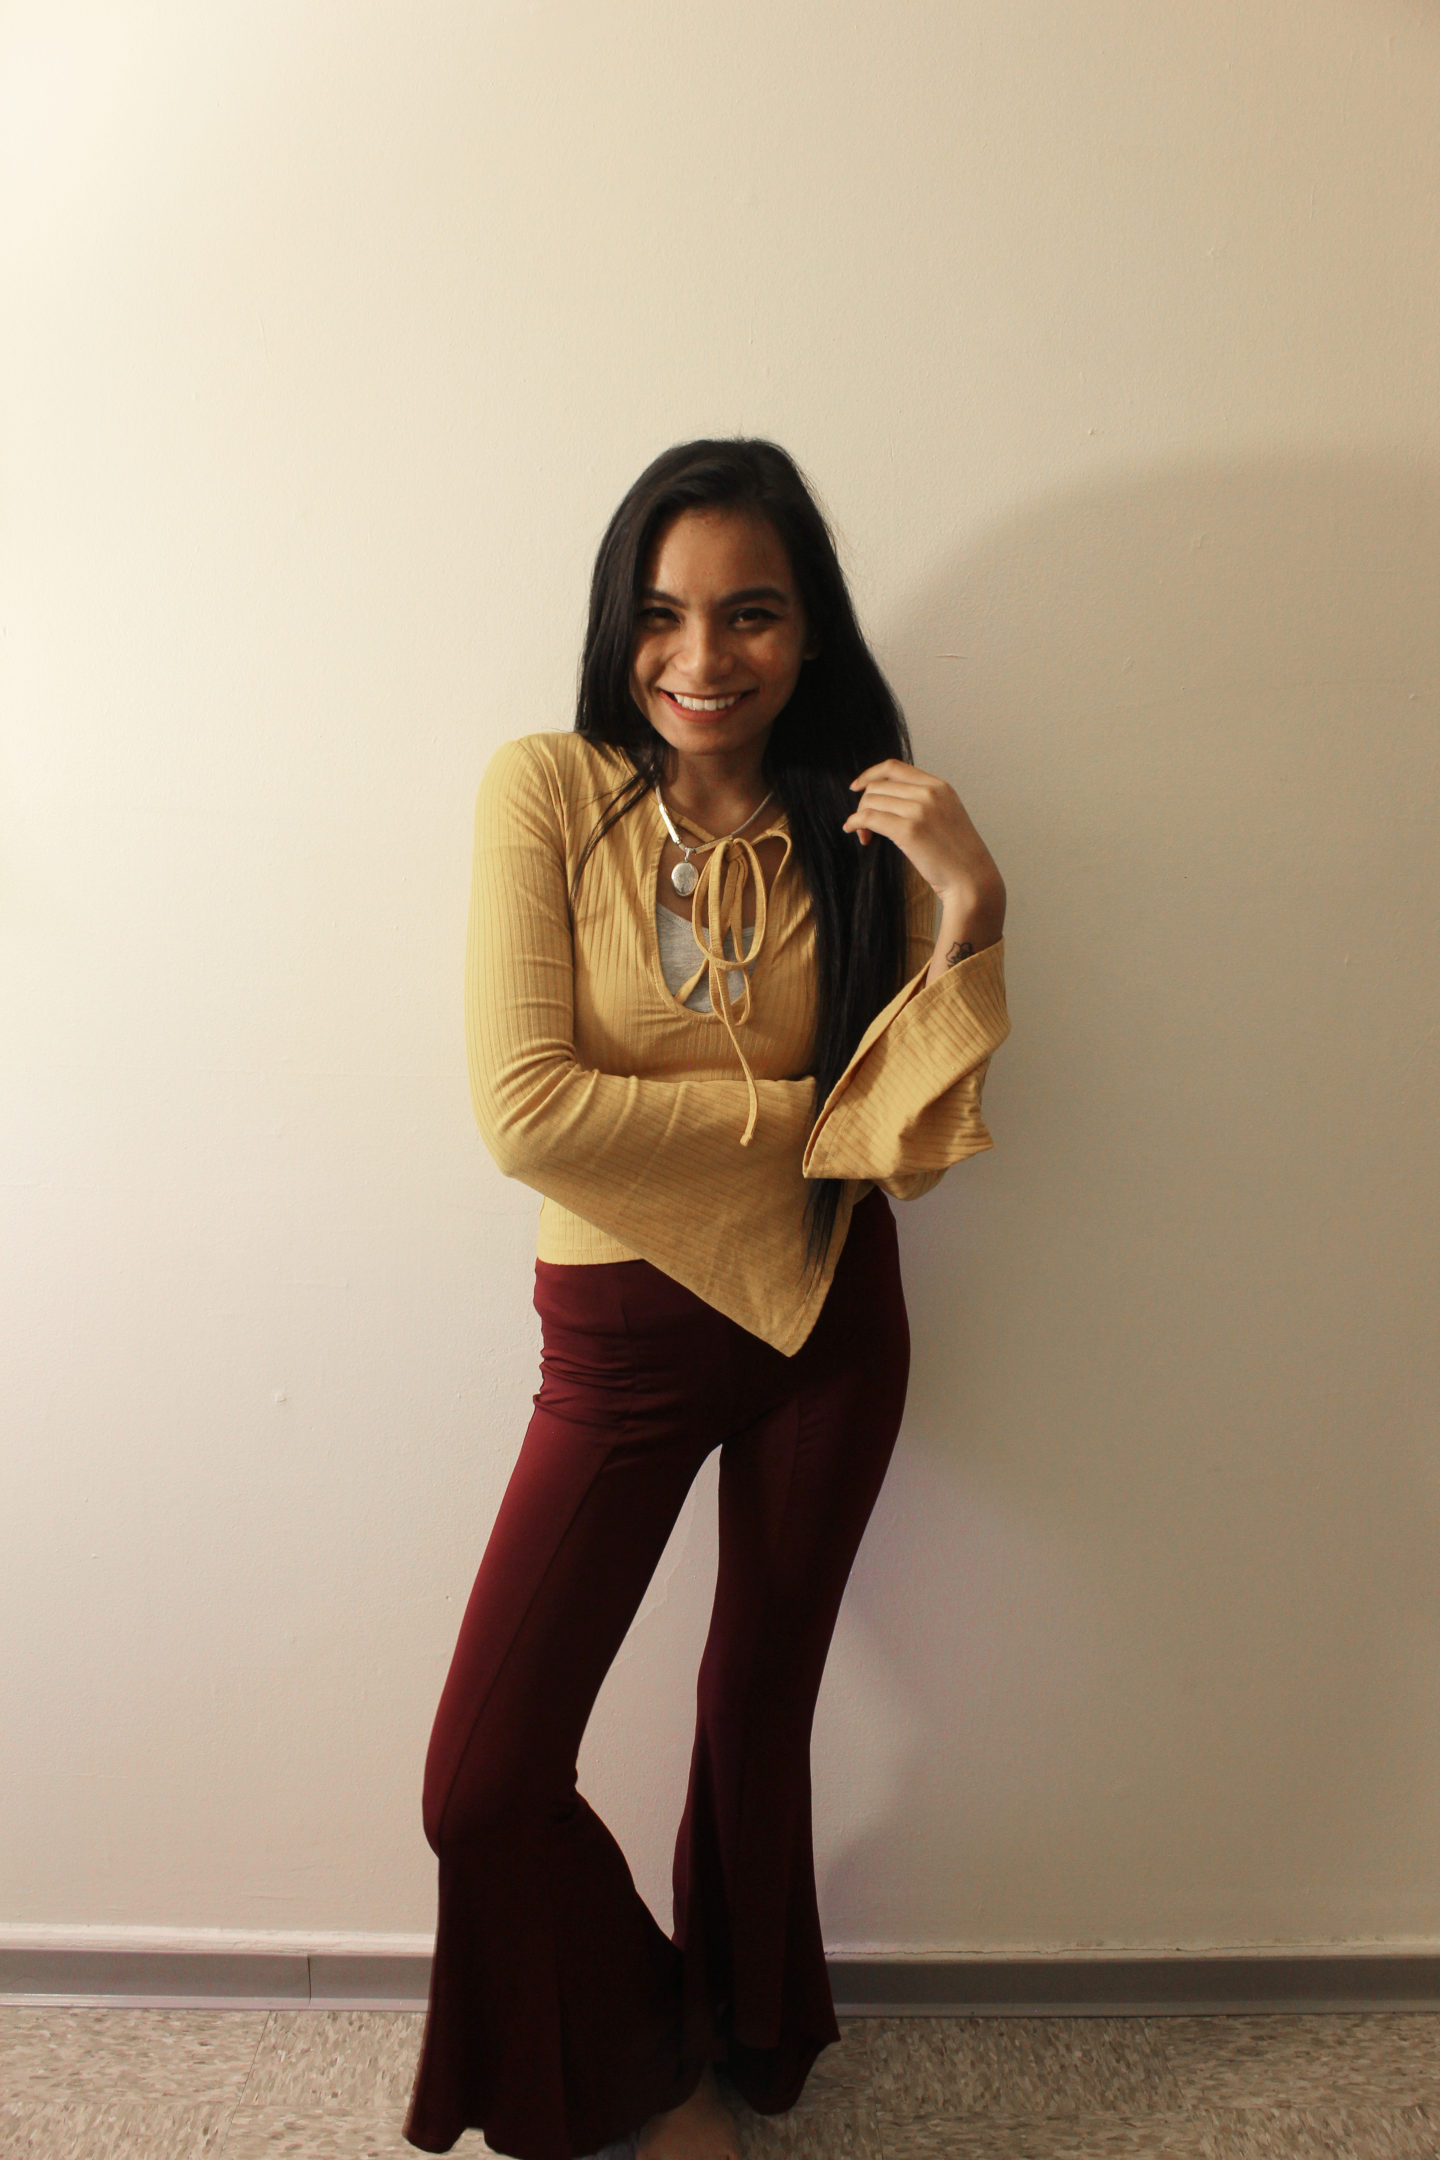 Styling Yellow and Maroon